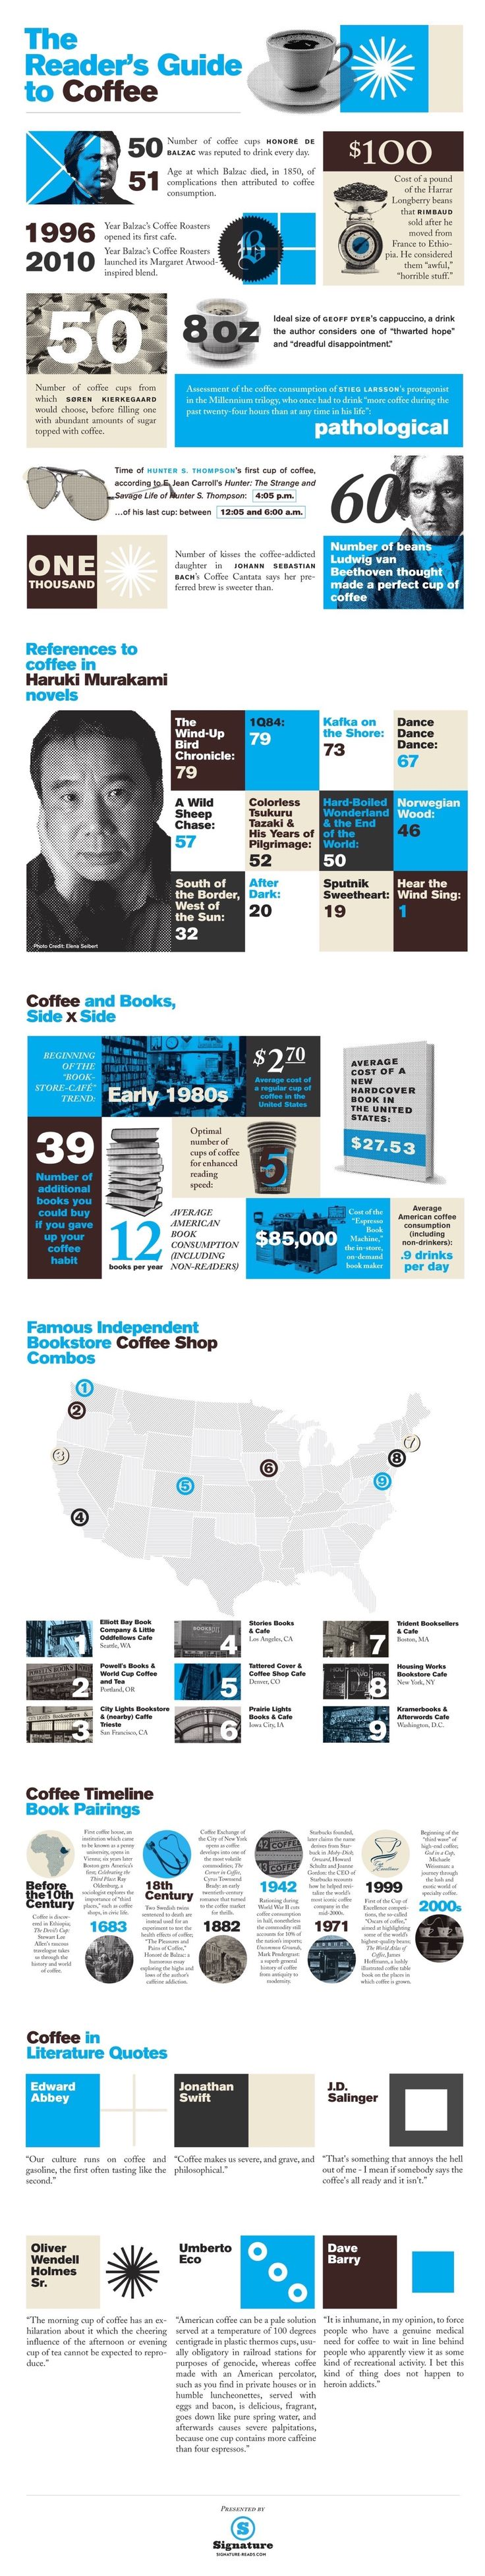 Book Lover's Dream: Coffee And Books (infographic)